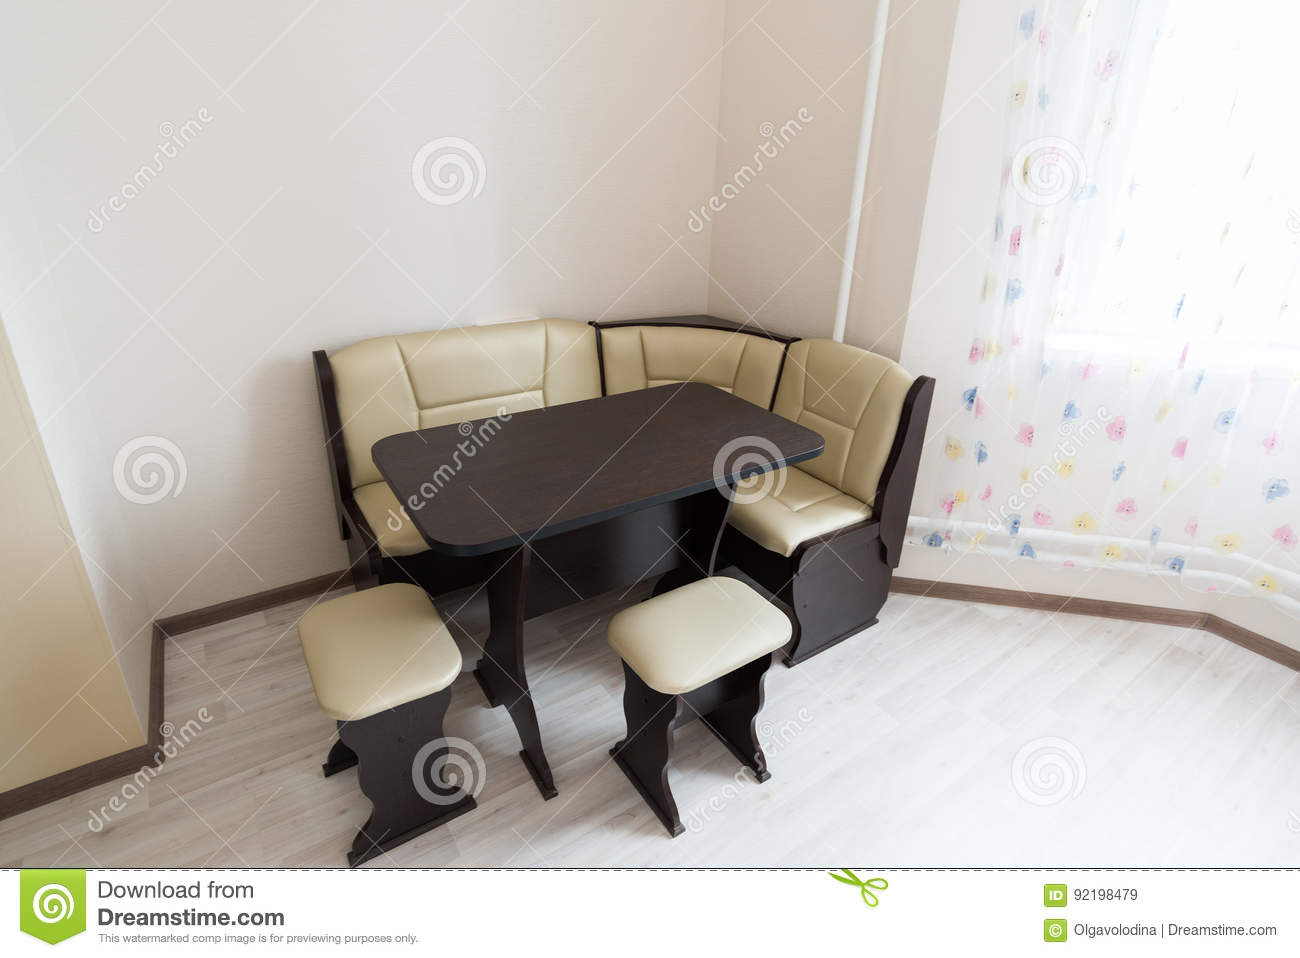 Kitchen Corner Sofa And Table In Interior Stock Image - Image of